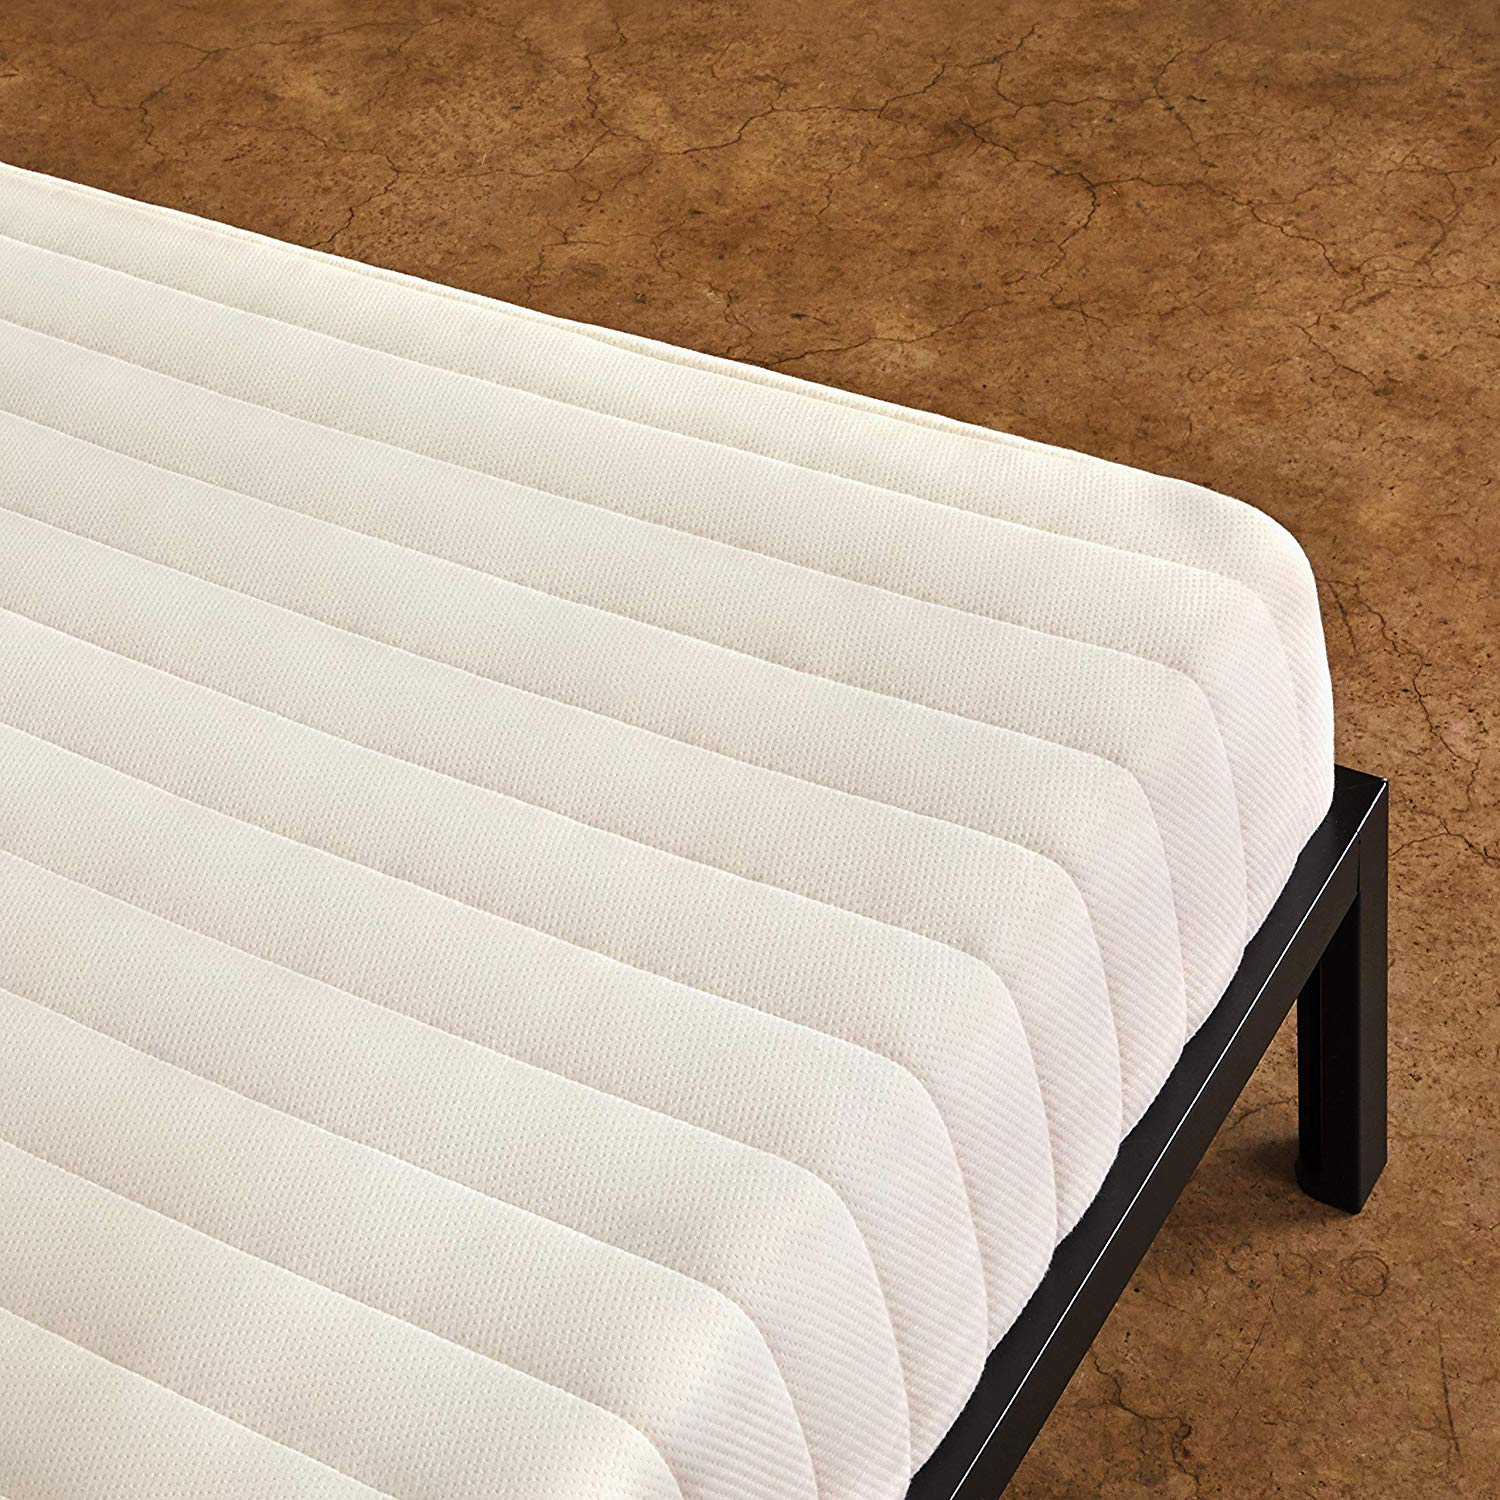 Sleep on Latex Best Queen Mattress Review by www.snoremagazine.com